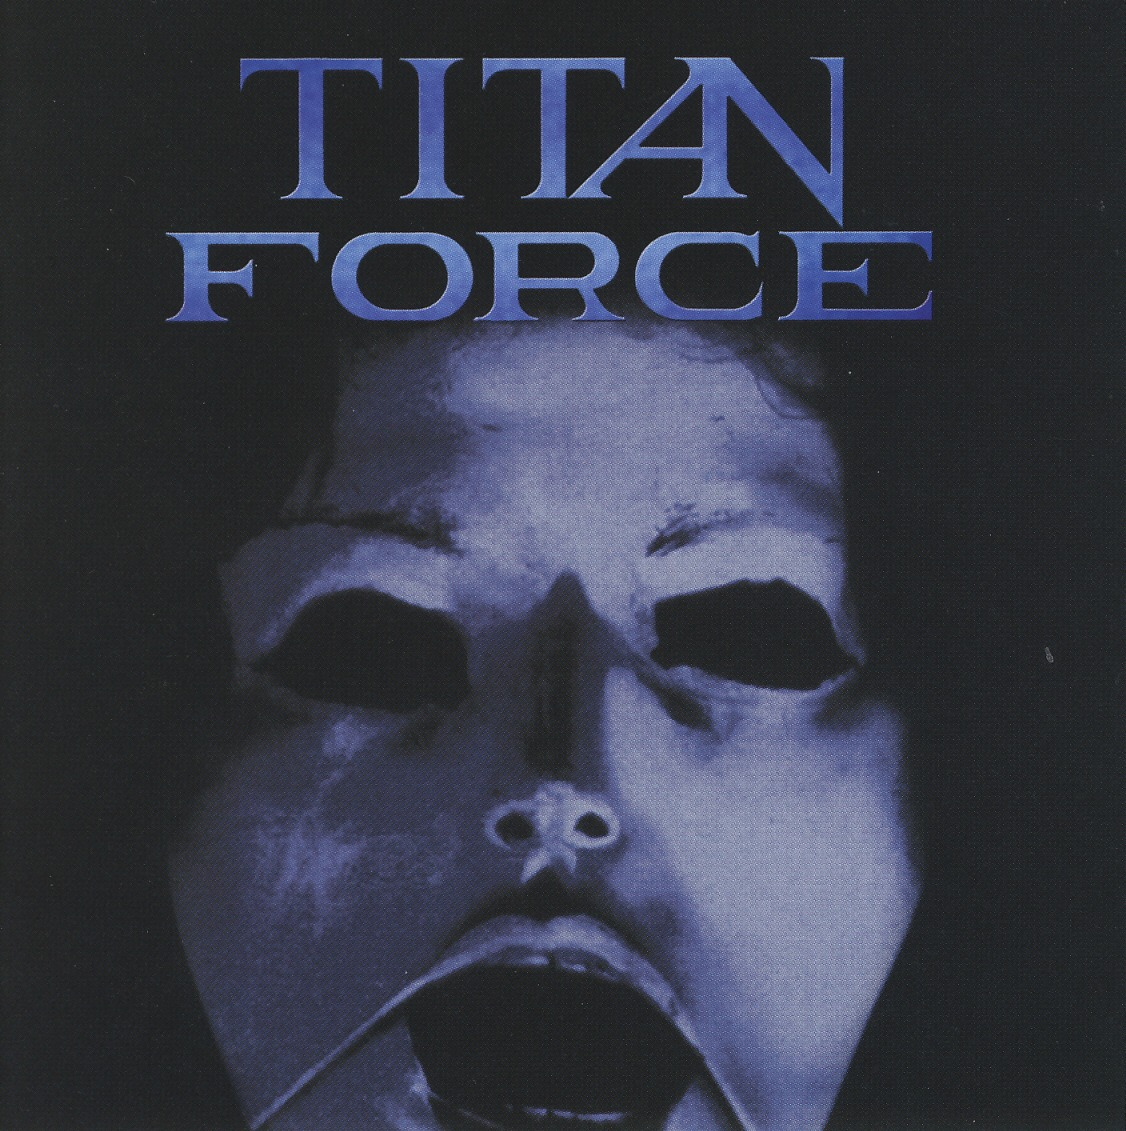 TITAN FORCE (US) / Titan Force + 6